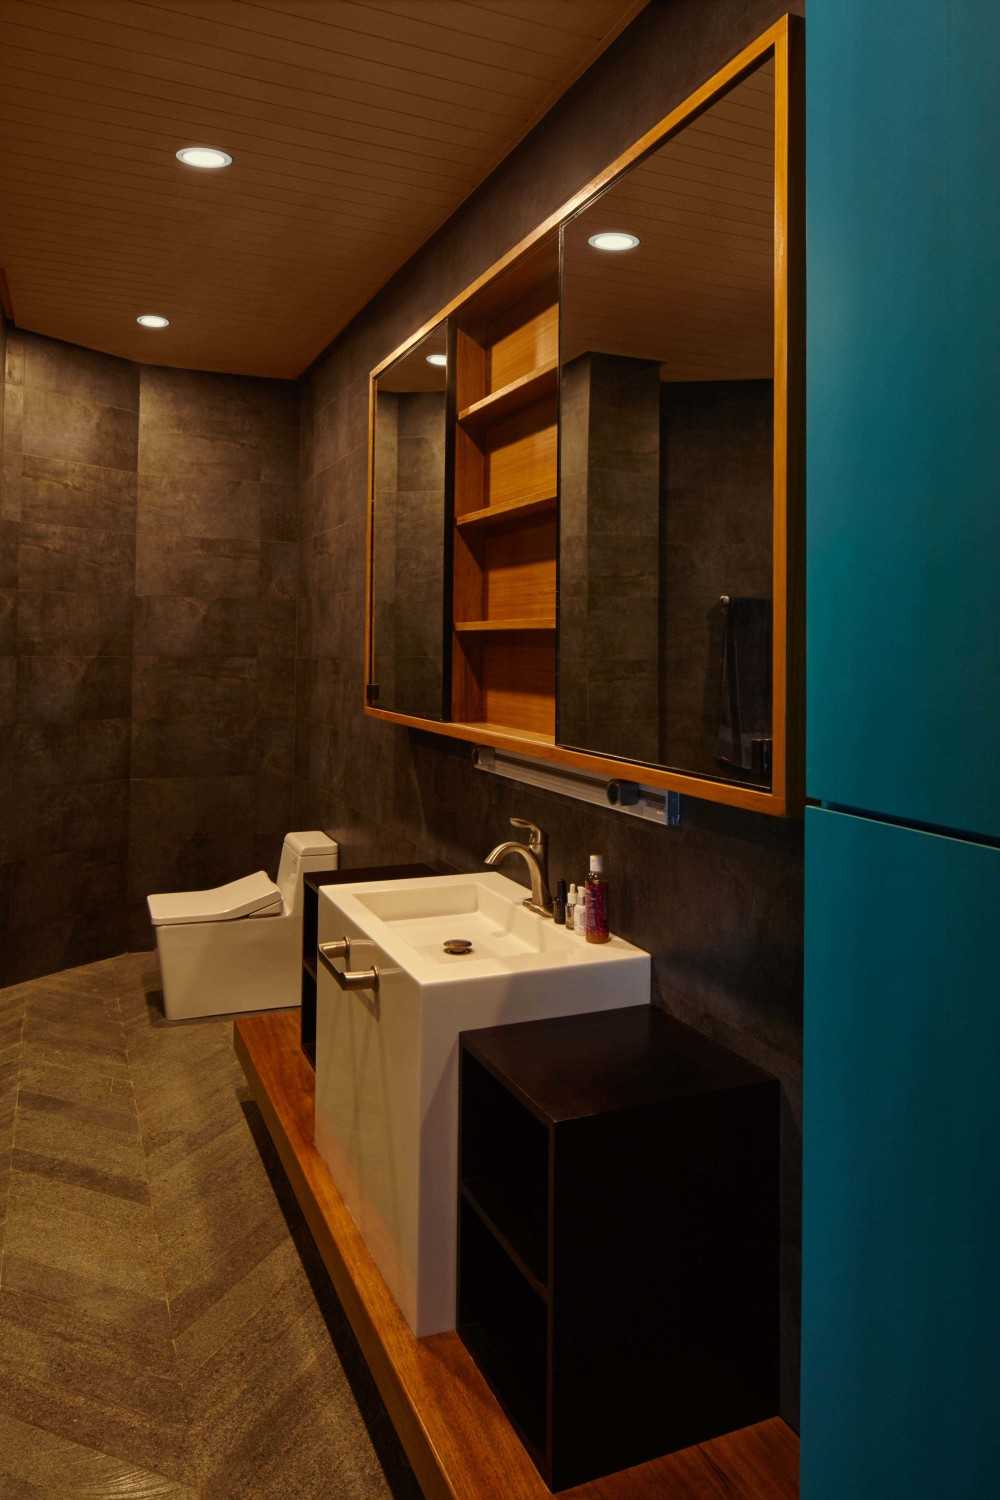 Alvin Tjitrowirjo, Alvint Studio Na Residence  Solo - Central Java  Solo - Central Java  Bathroom Contemporary 15646